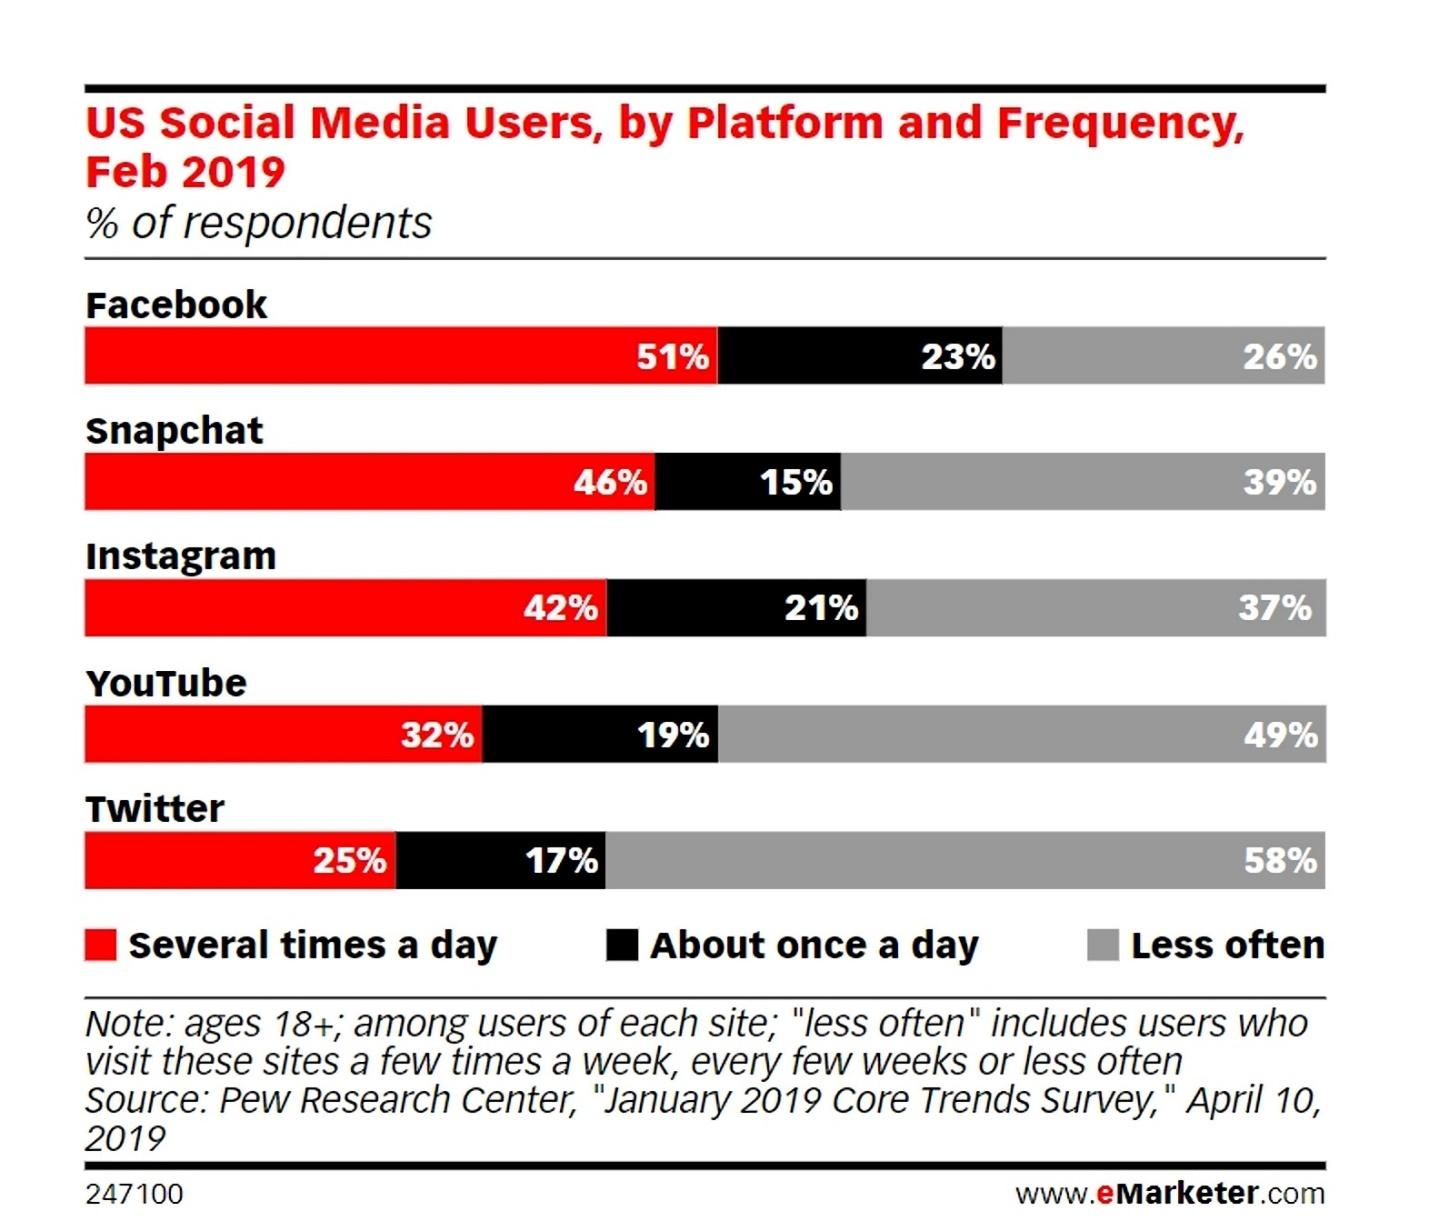 US Social Media users by platform and frequency stats